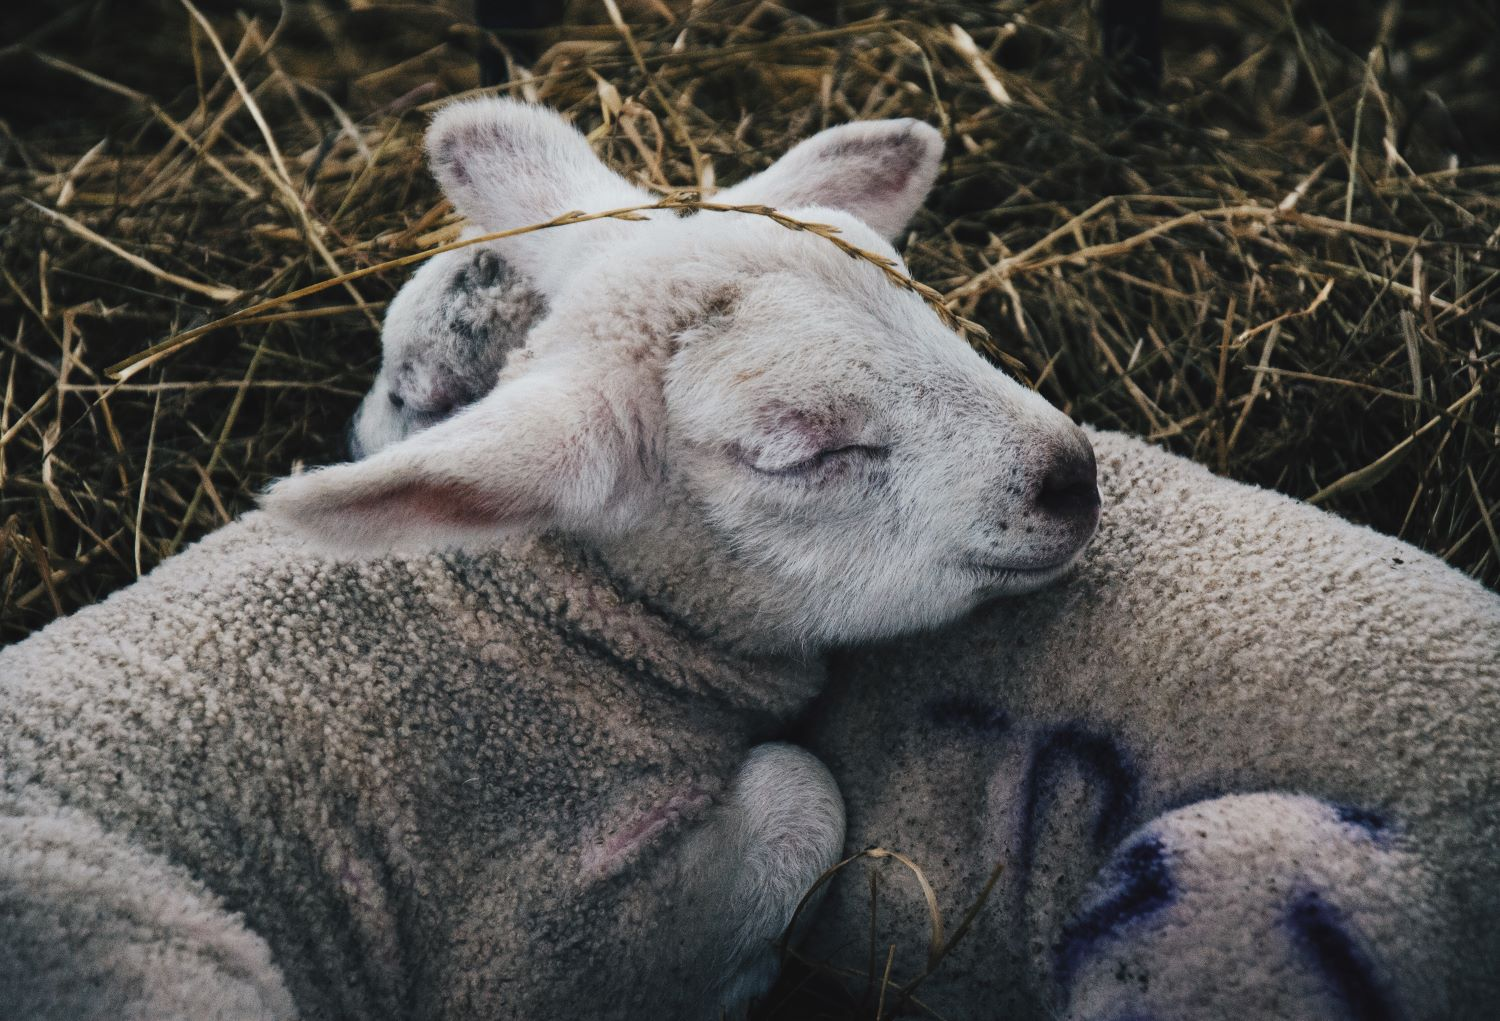 Two cuddly lambs sleeping peacefully